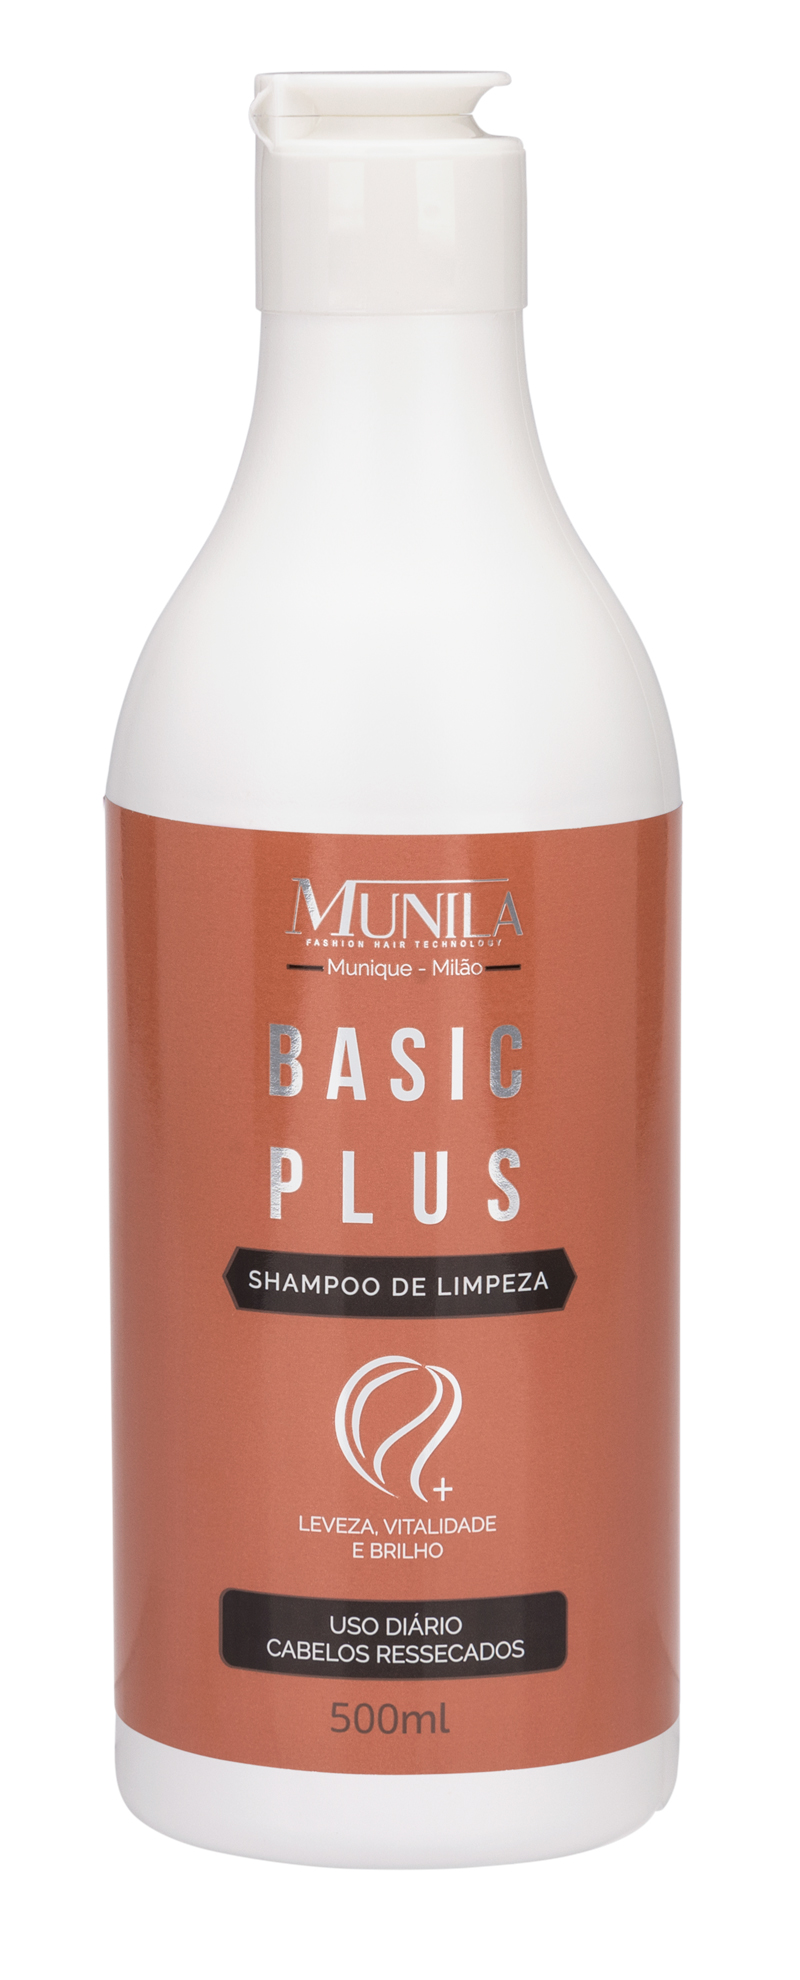 Basic Plus Shampoo 500ml